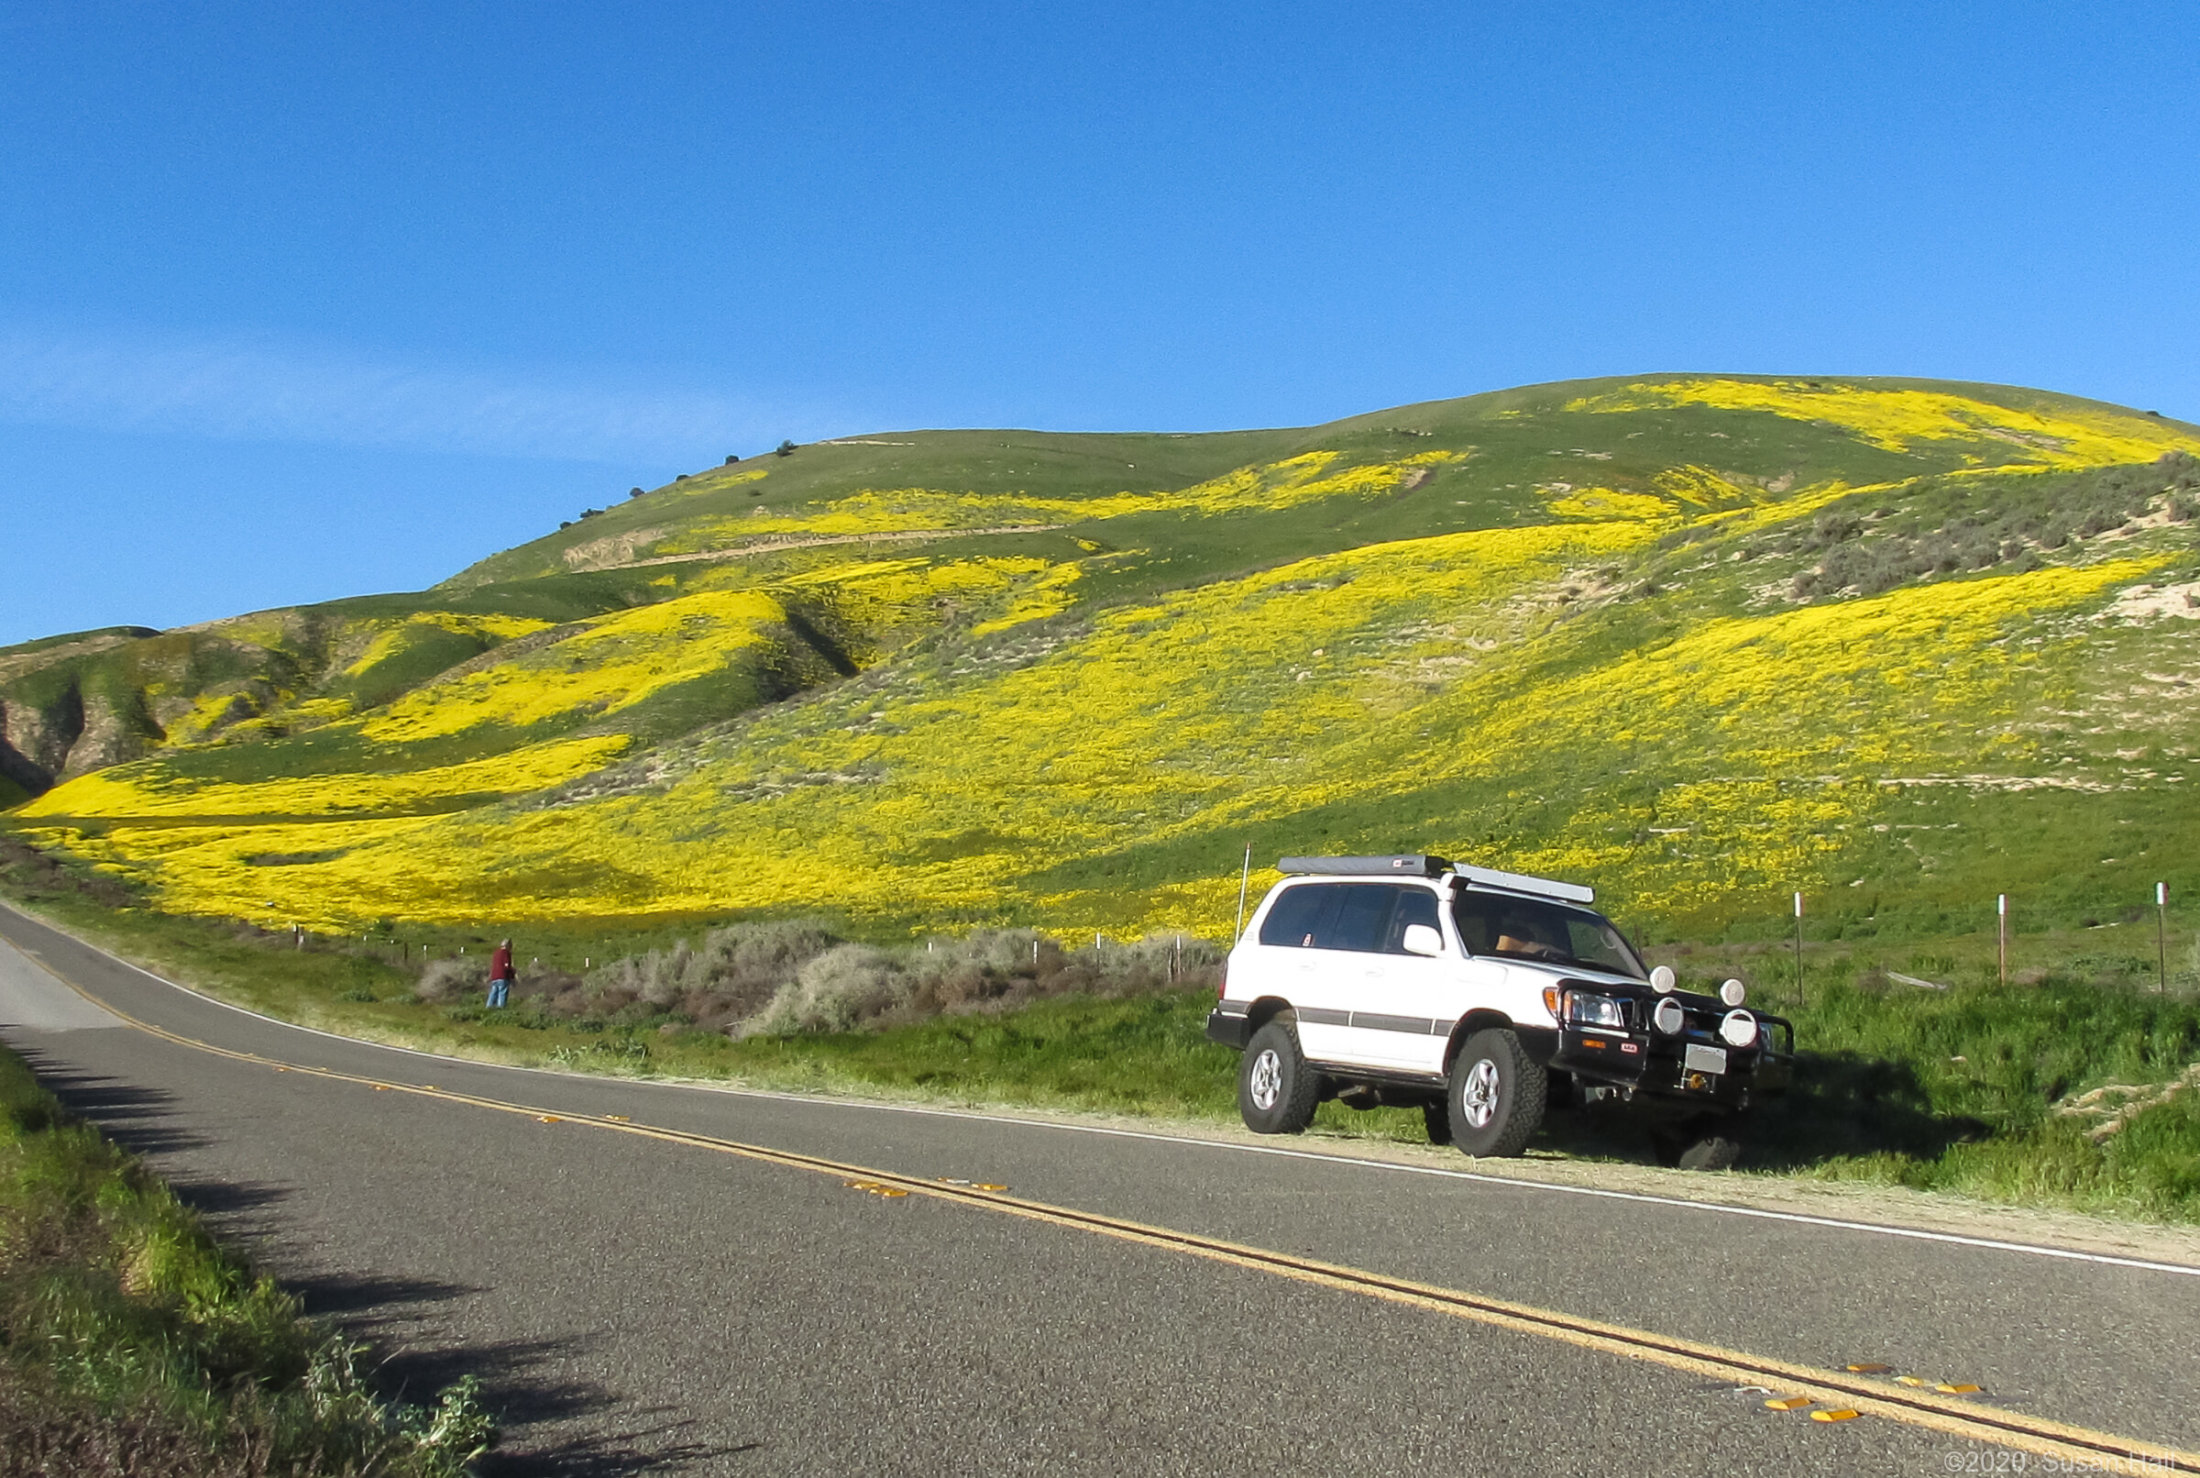 Cliff chasing wildflowers